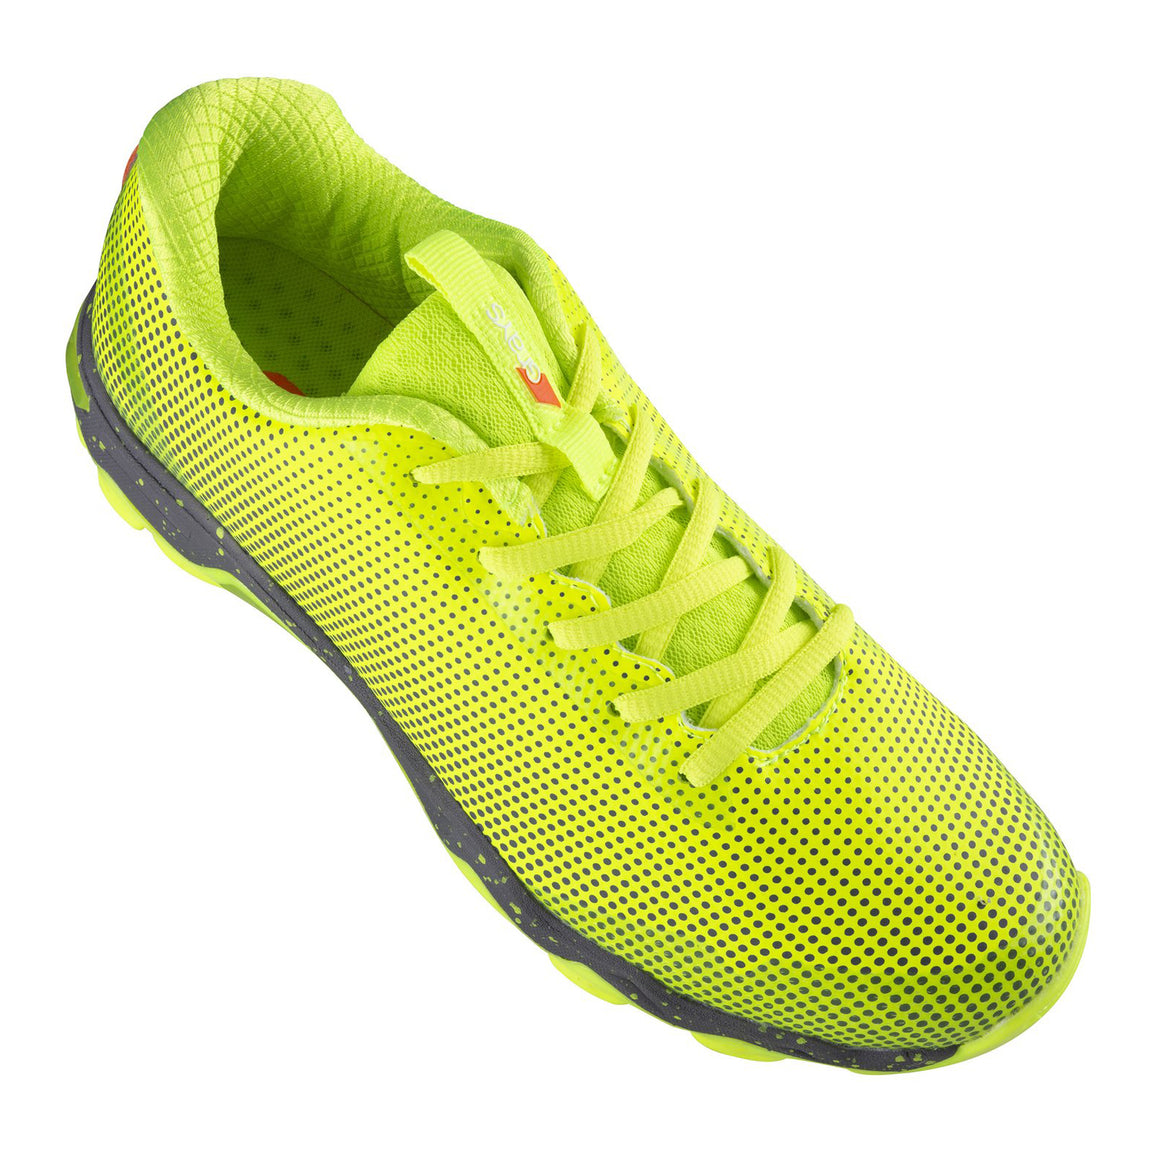 Flight Ast Astro Trainers in Yellow